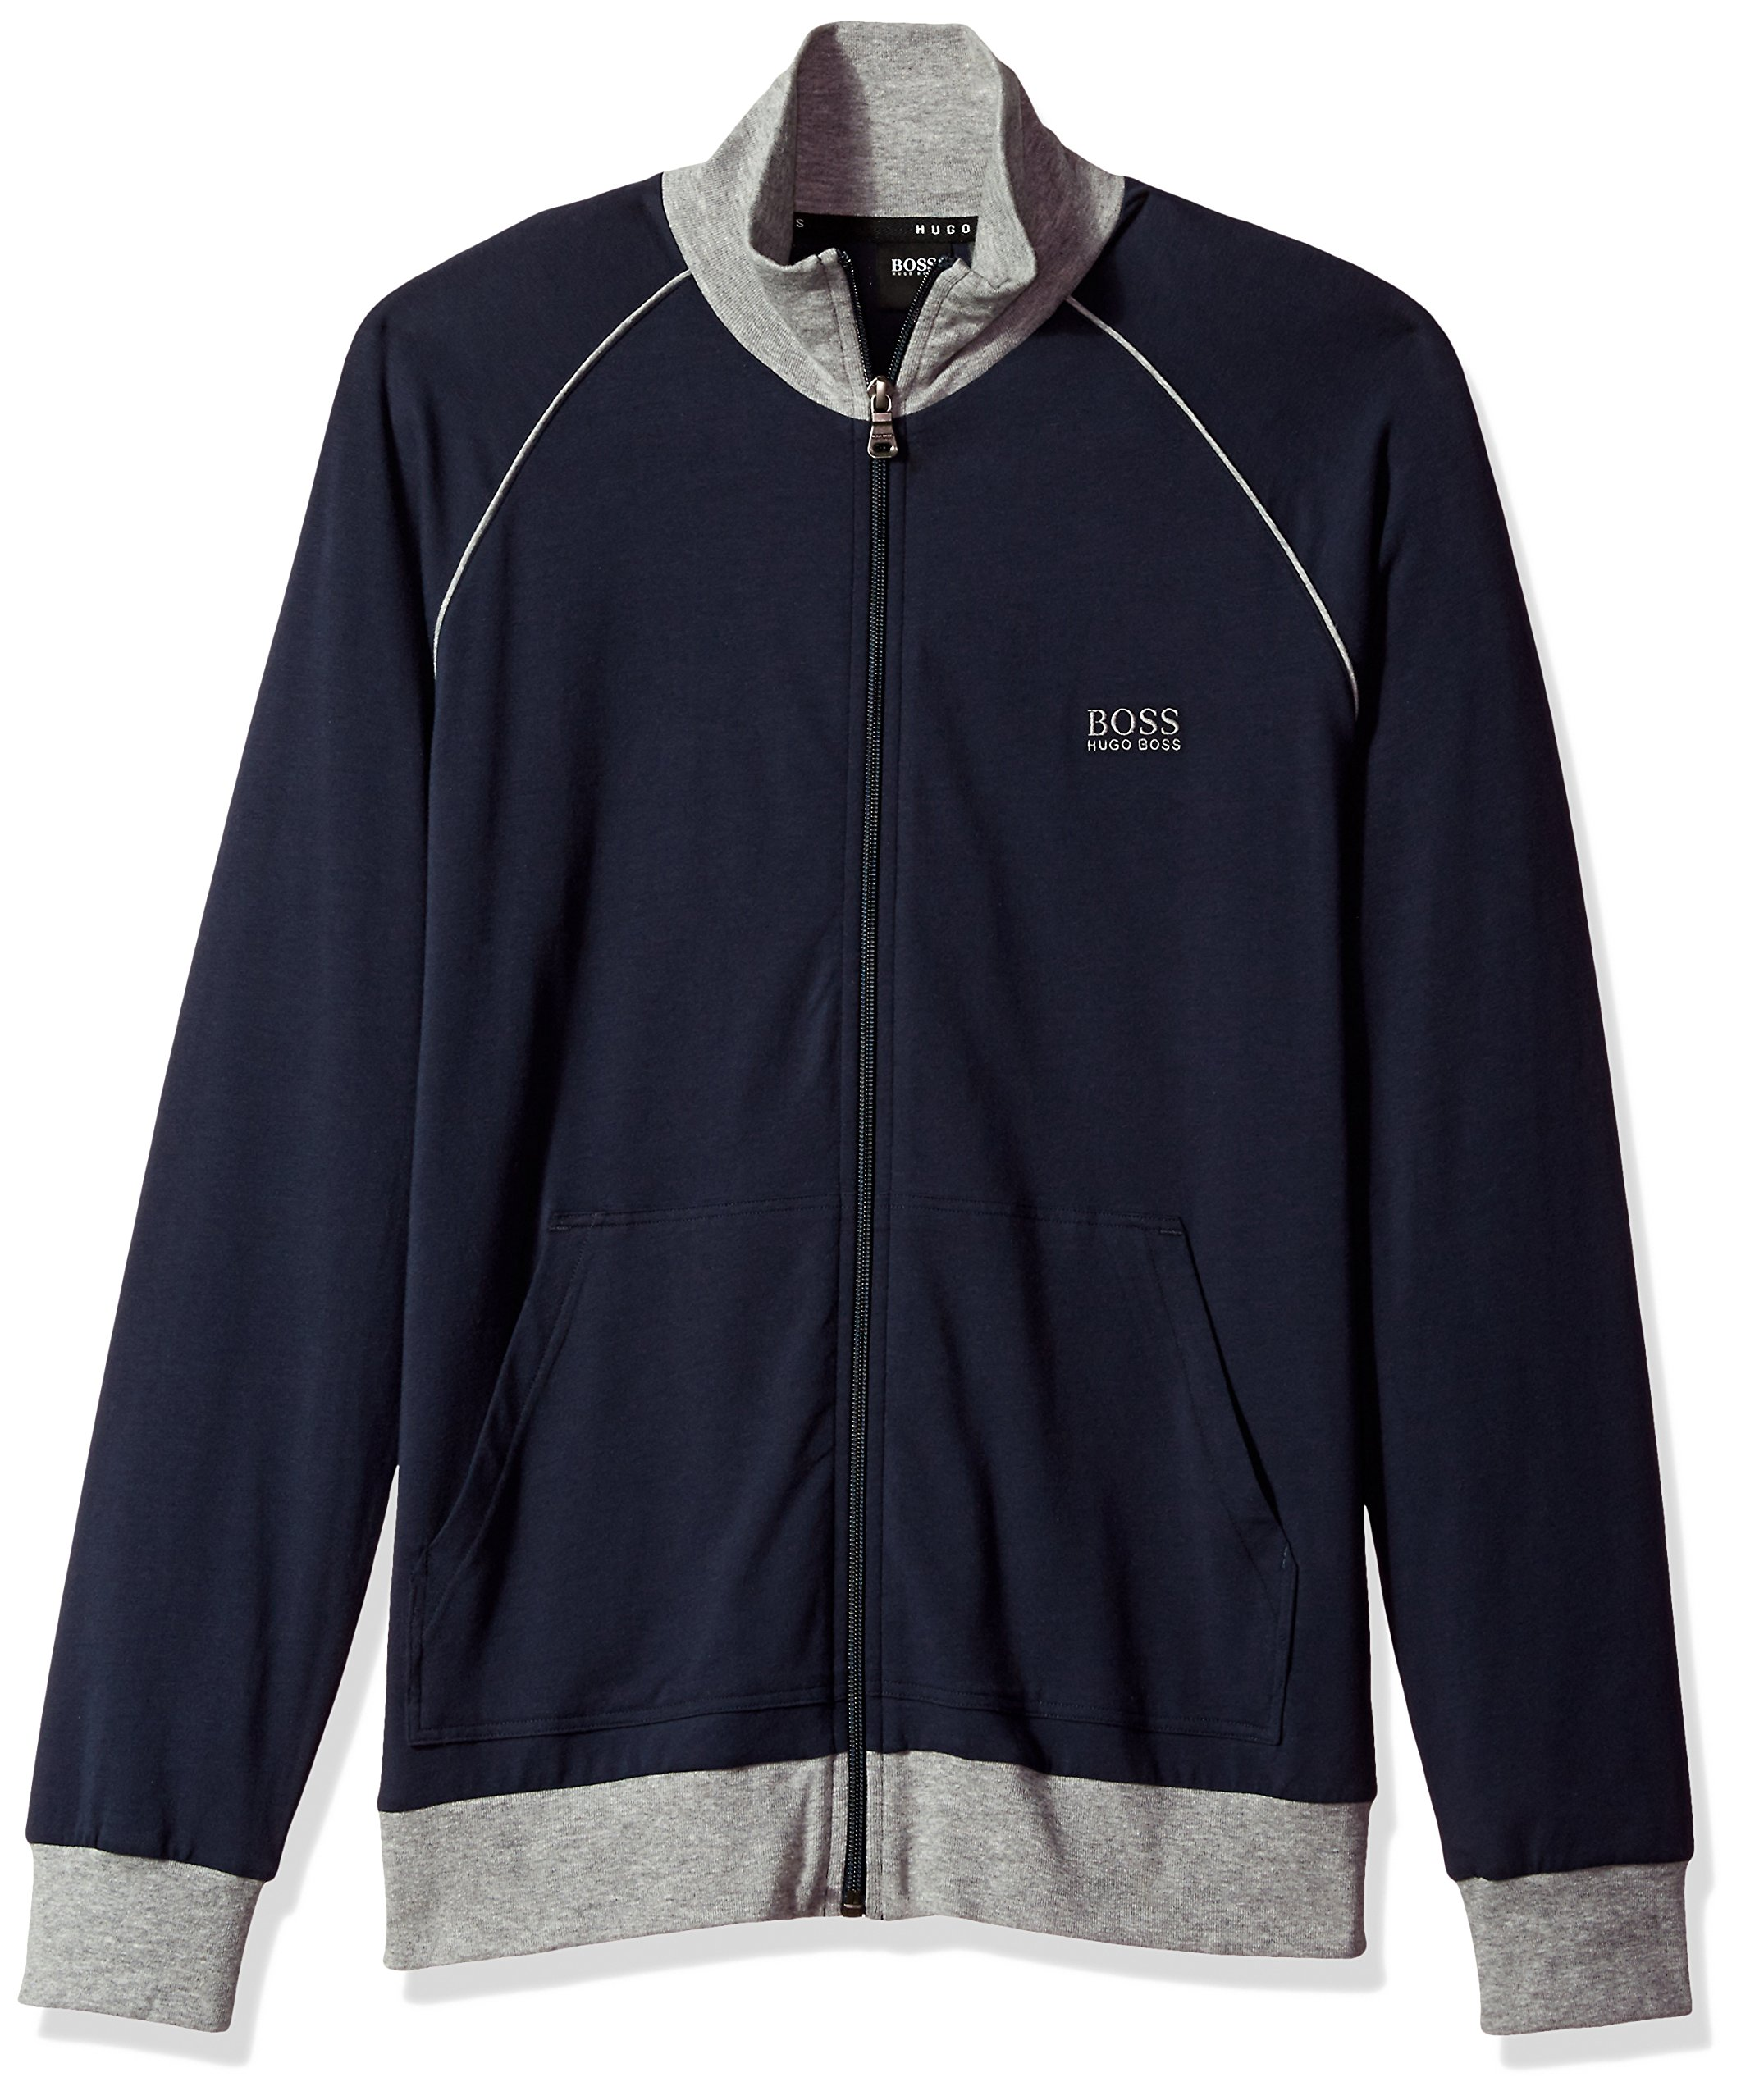 Hugo Boss Men's Jacket Zip, Dark Blue, L